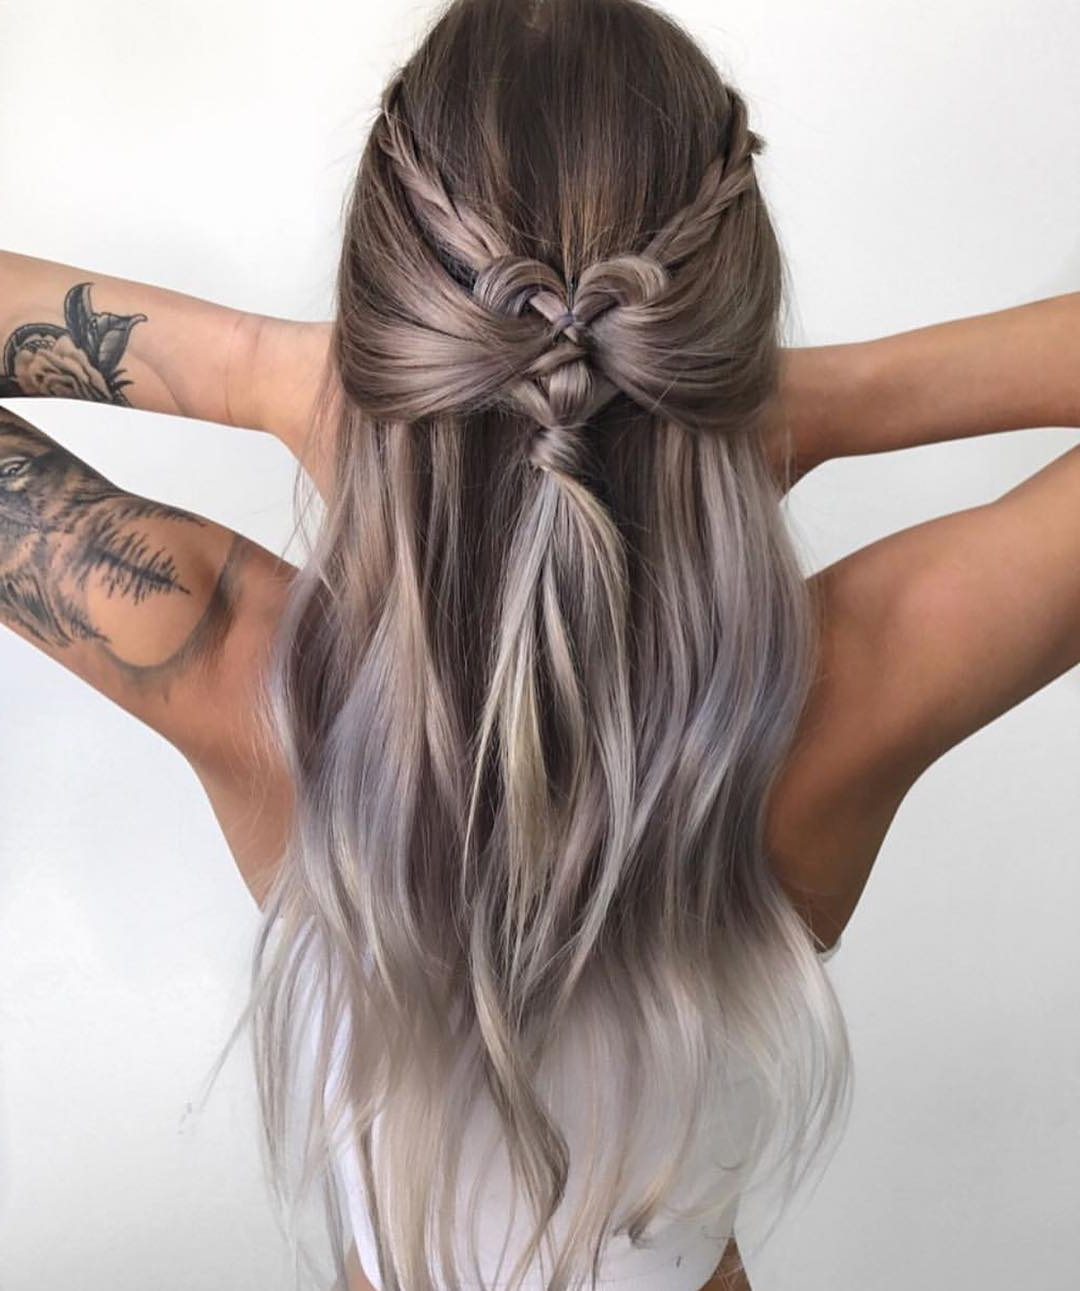 10 Braided Hairstyles For Long Hair – Weddings, Festivals & Holiday In Silver And Sophisticated Hairstyles (View 3 of 20)